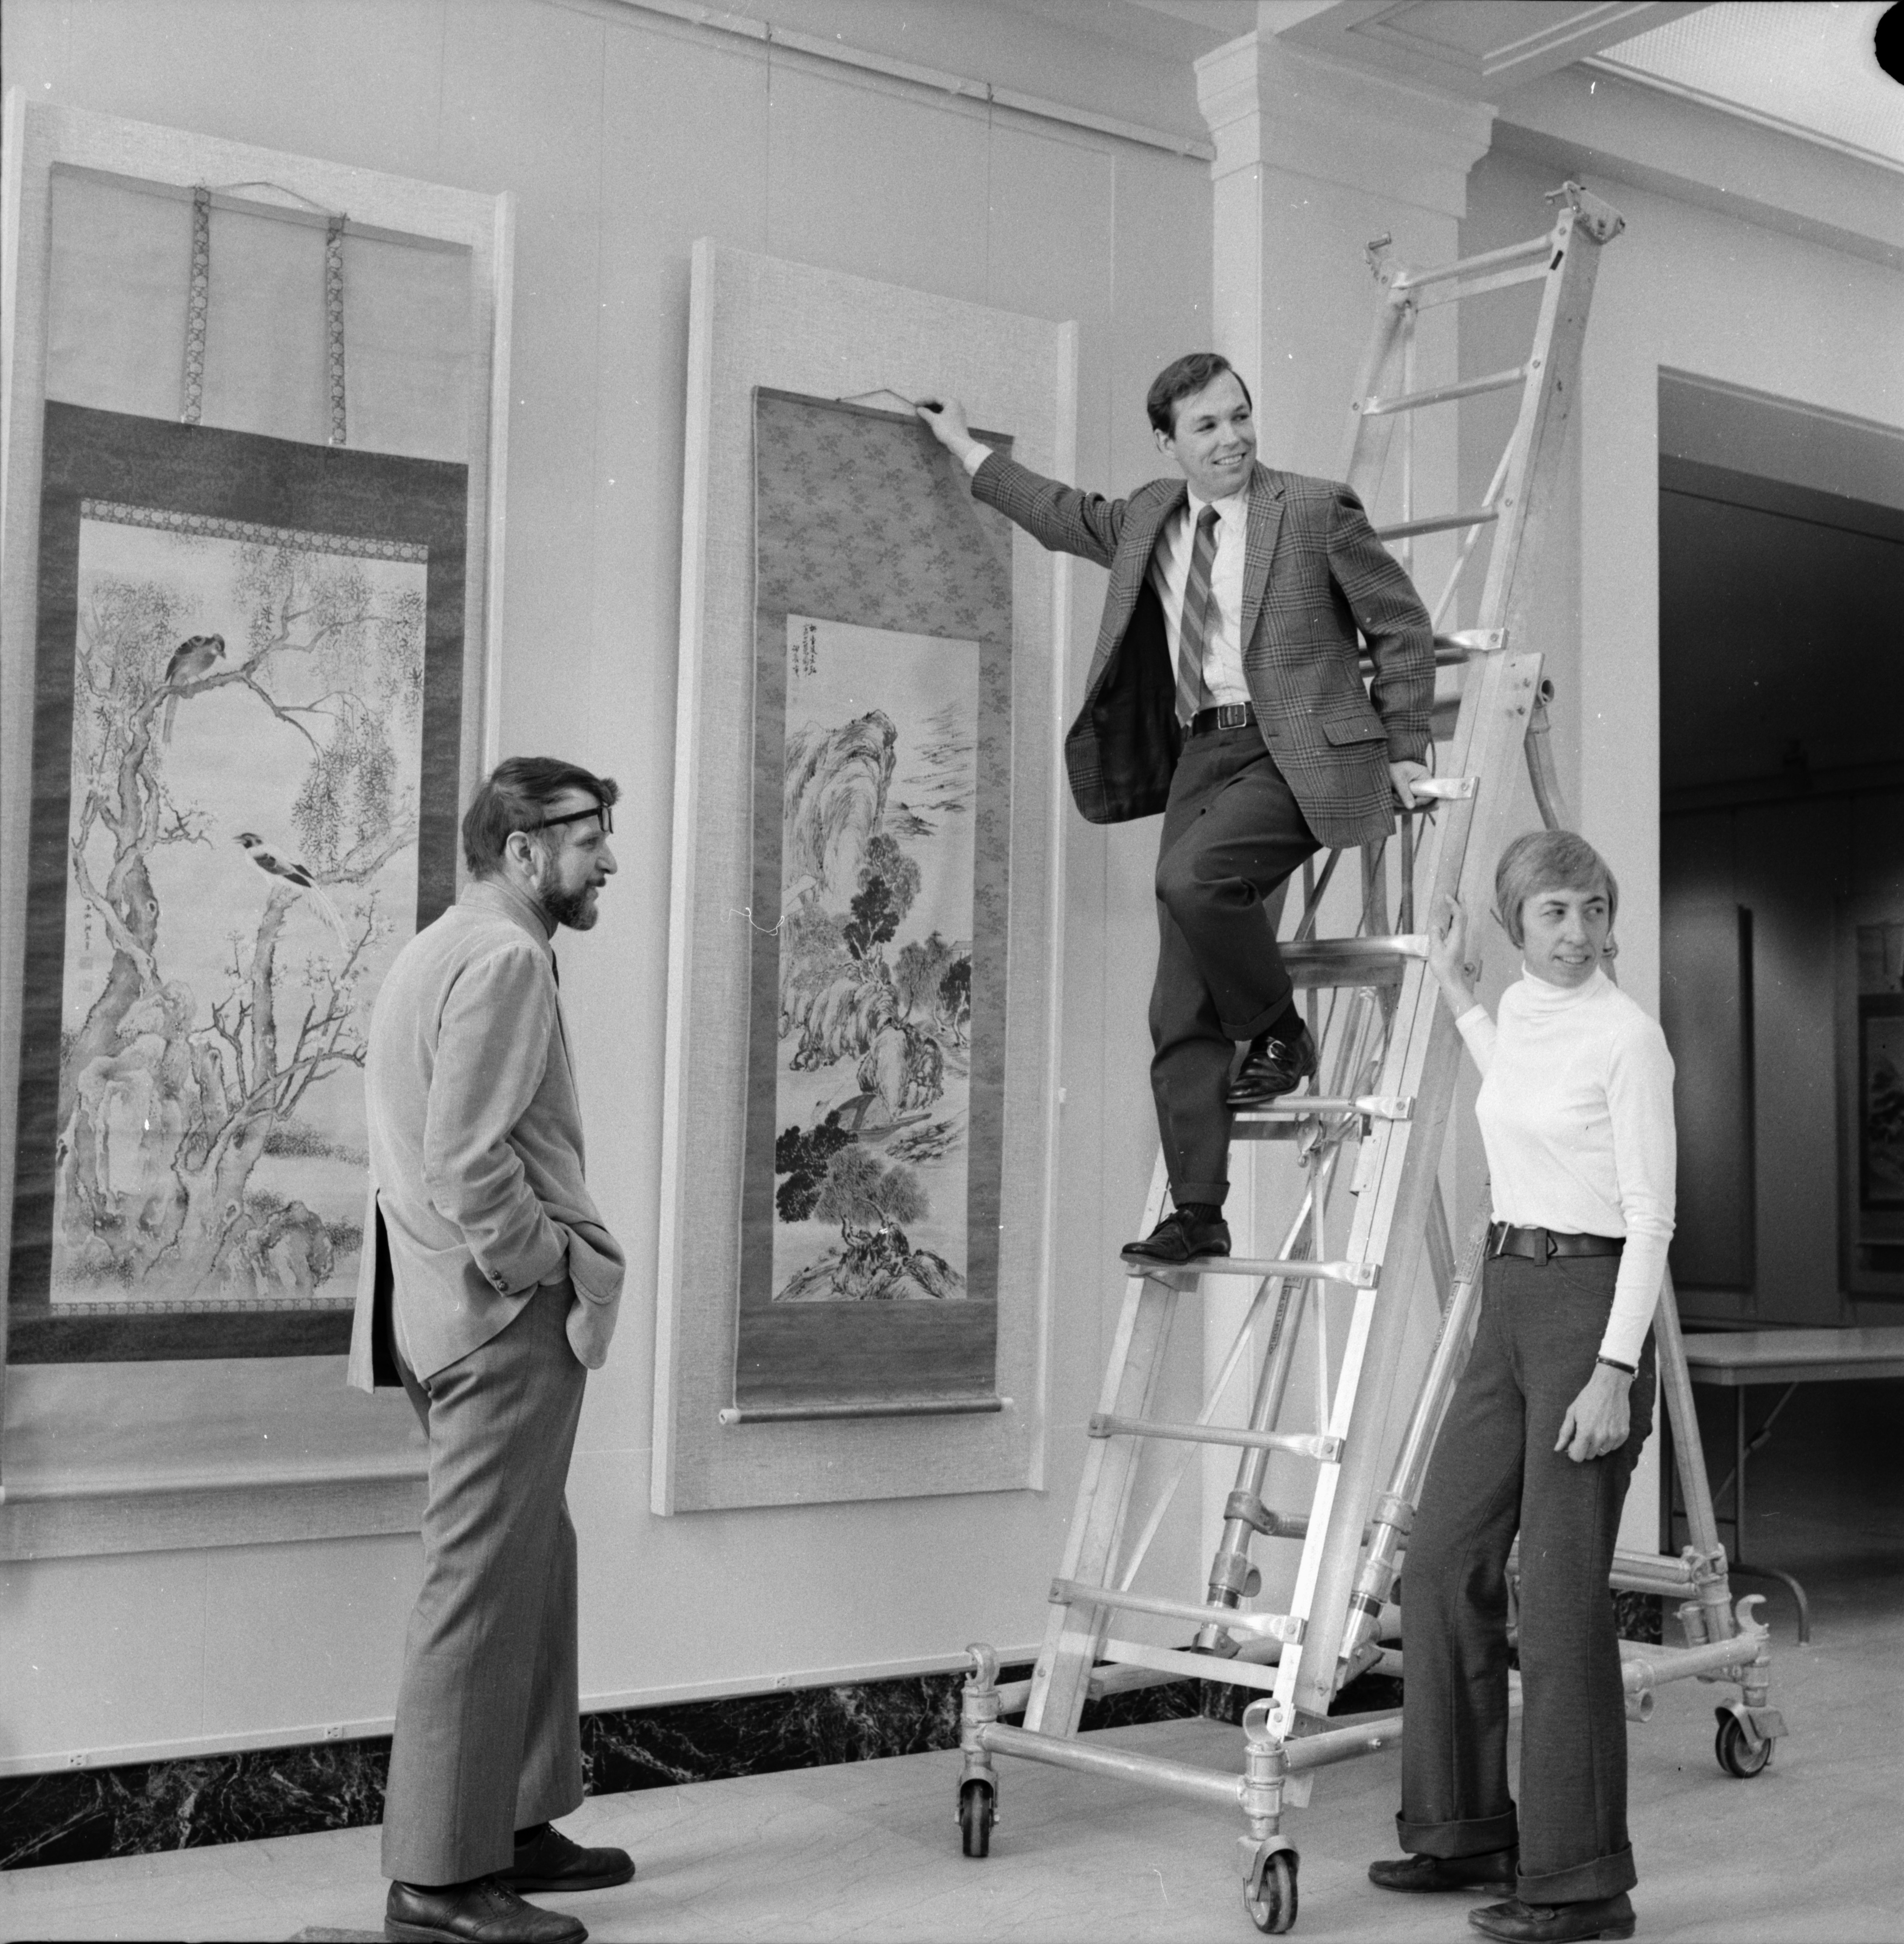 A. Bret Waller, John Holmes, and Nesta Spink Hanging Japanese Scrolls at University of Michigan Museum of Art, January 1974 image